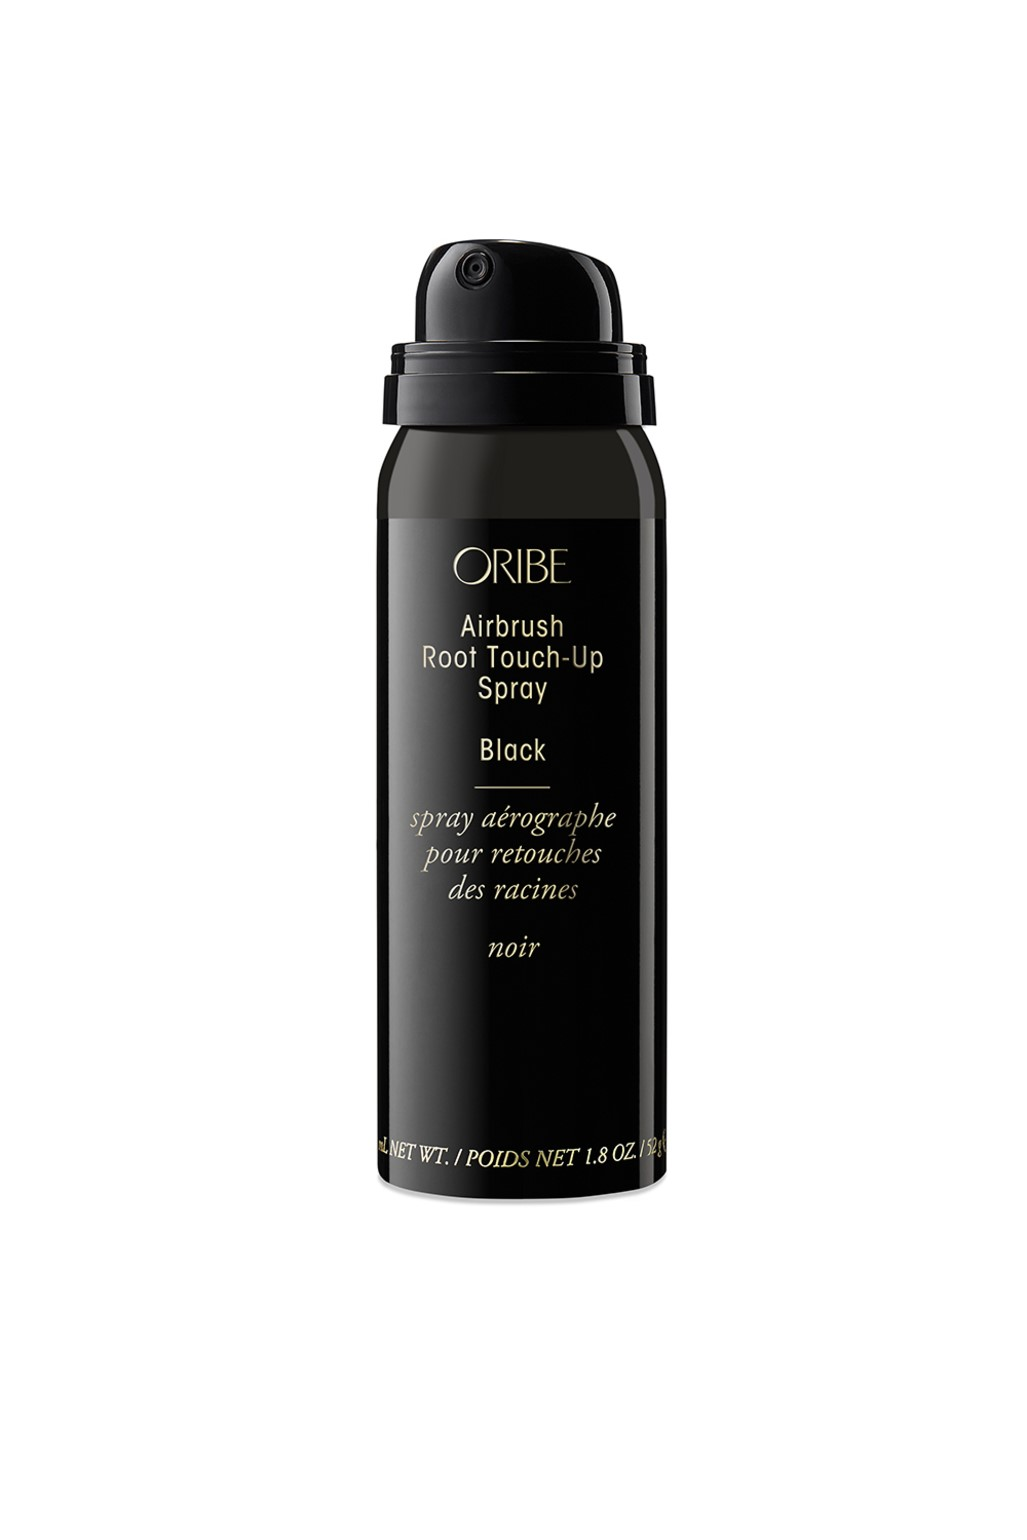 Airbrush Root Touch-Up Spray (Black)